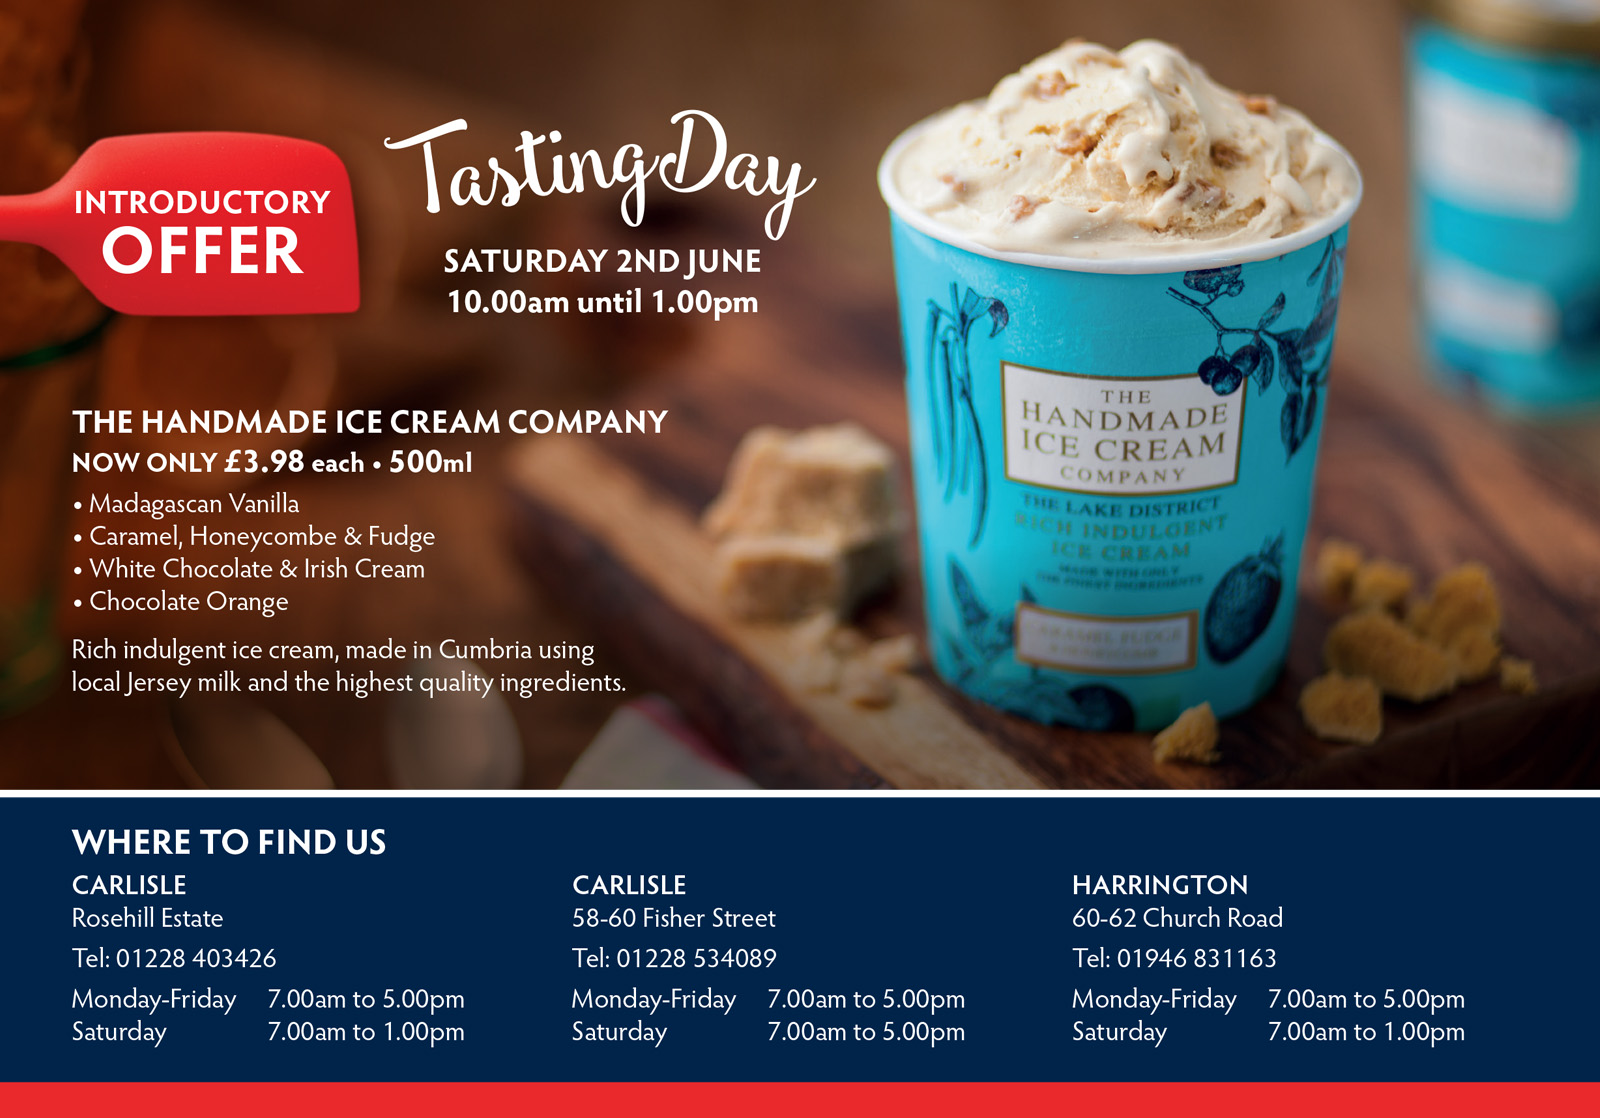 Layout in leaflet featuring The Handmade Ice Cream Company